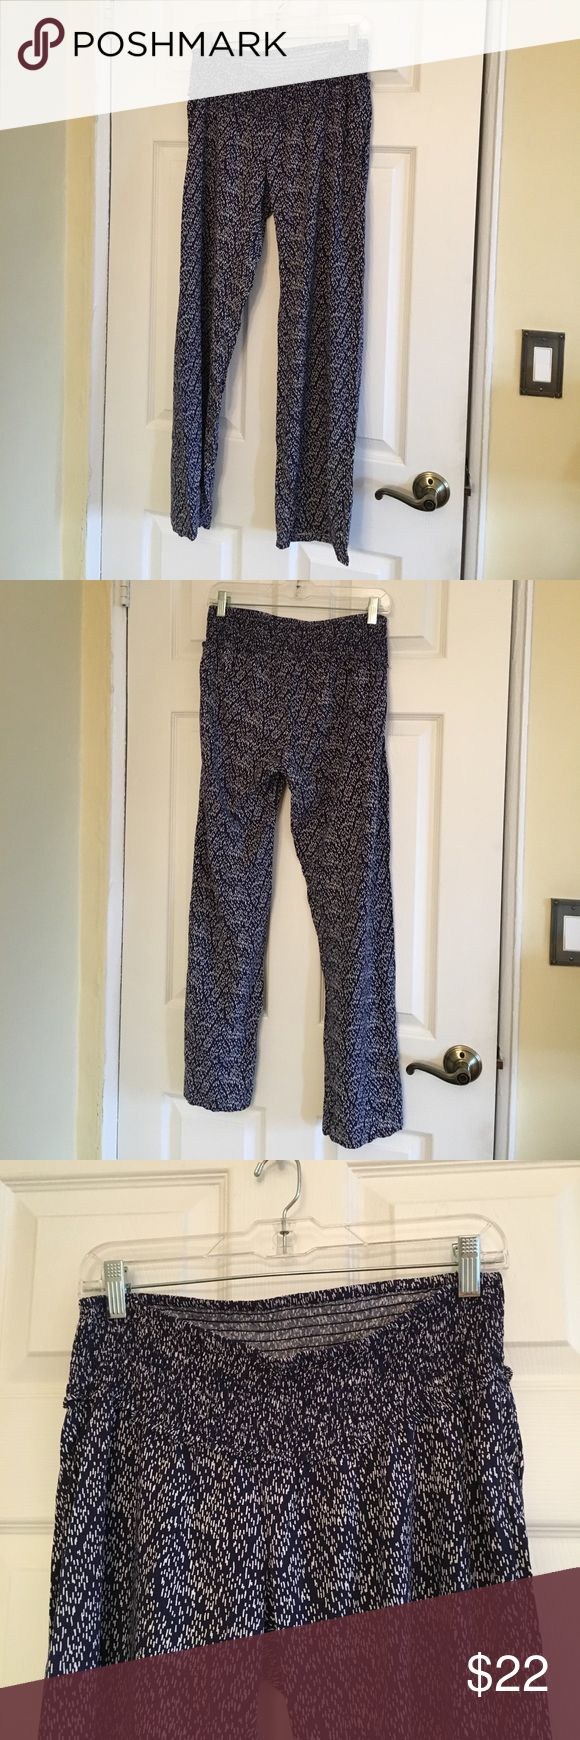 Jessica Simpson Maternity Pants Super soft navy pants with a stretchy elastic waistband. In great condition! Jessica Simpson Pants Wide Leg